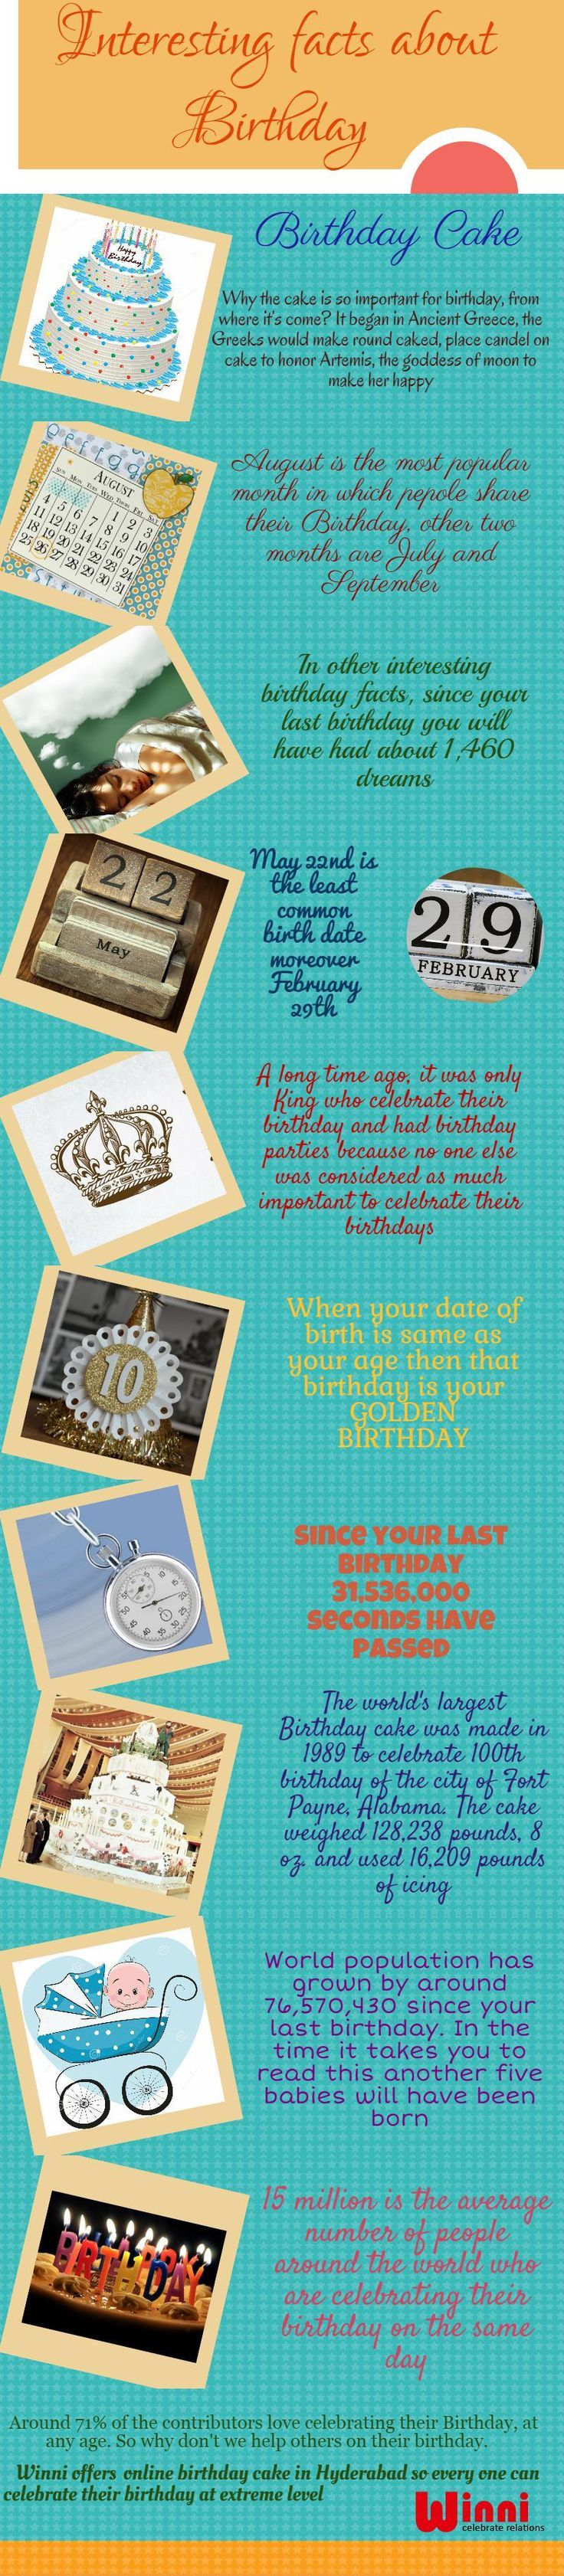 #Birthday #Celebration fun facts .... www.winni.in